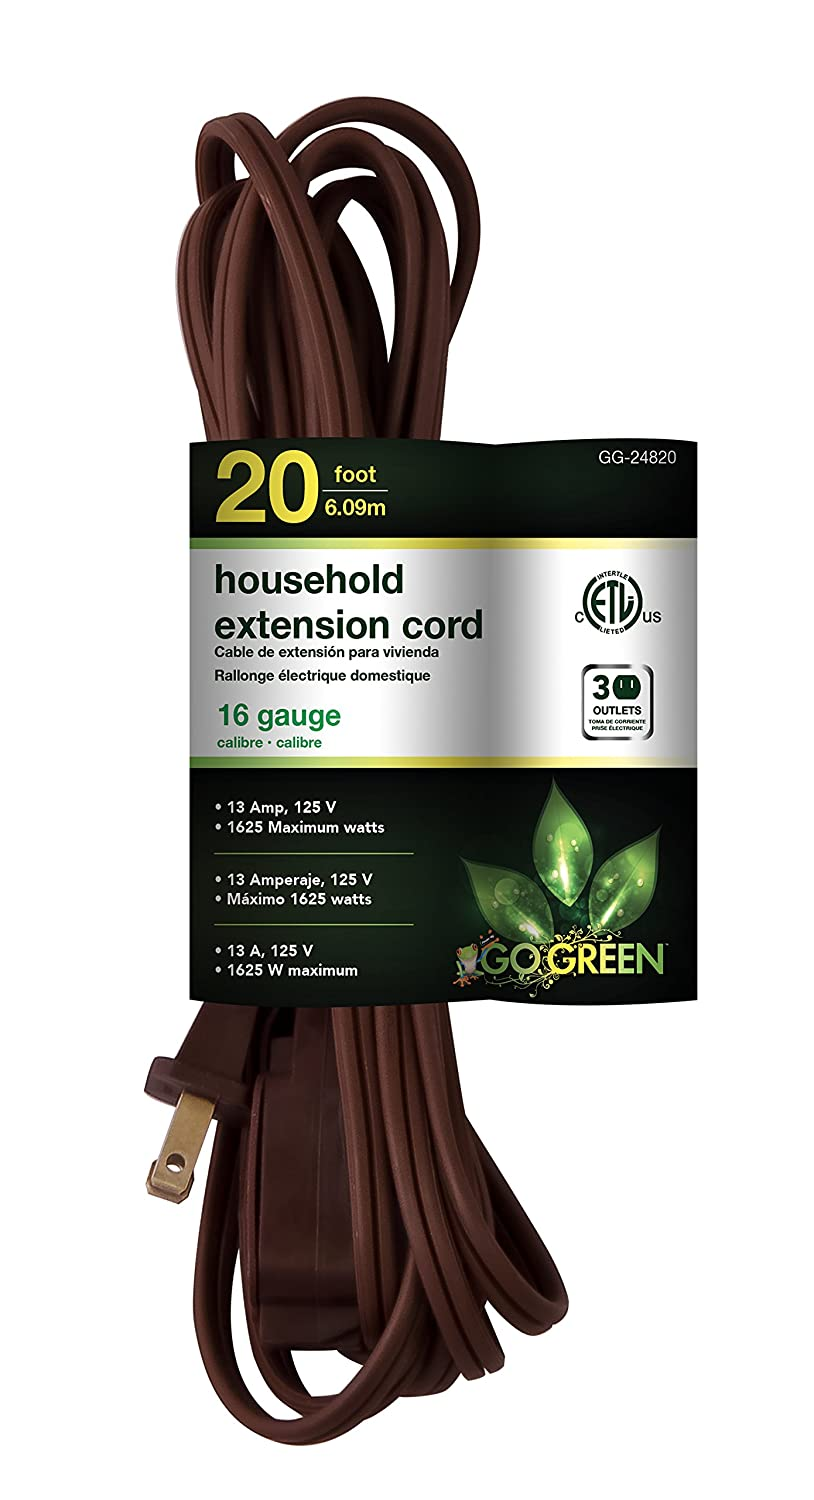 GoGreen Power GG-24820 16/2 20' Household Extension Cord - Brown